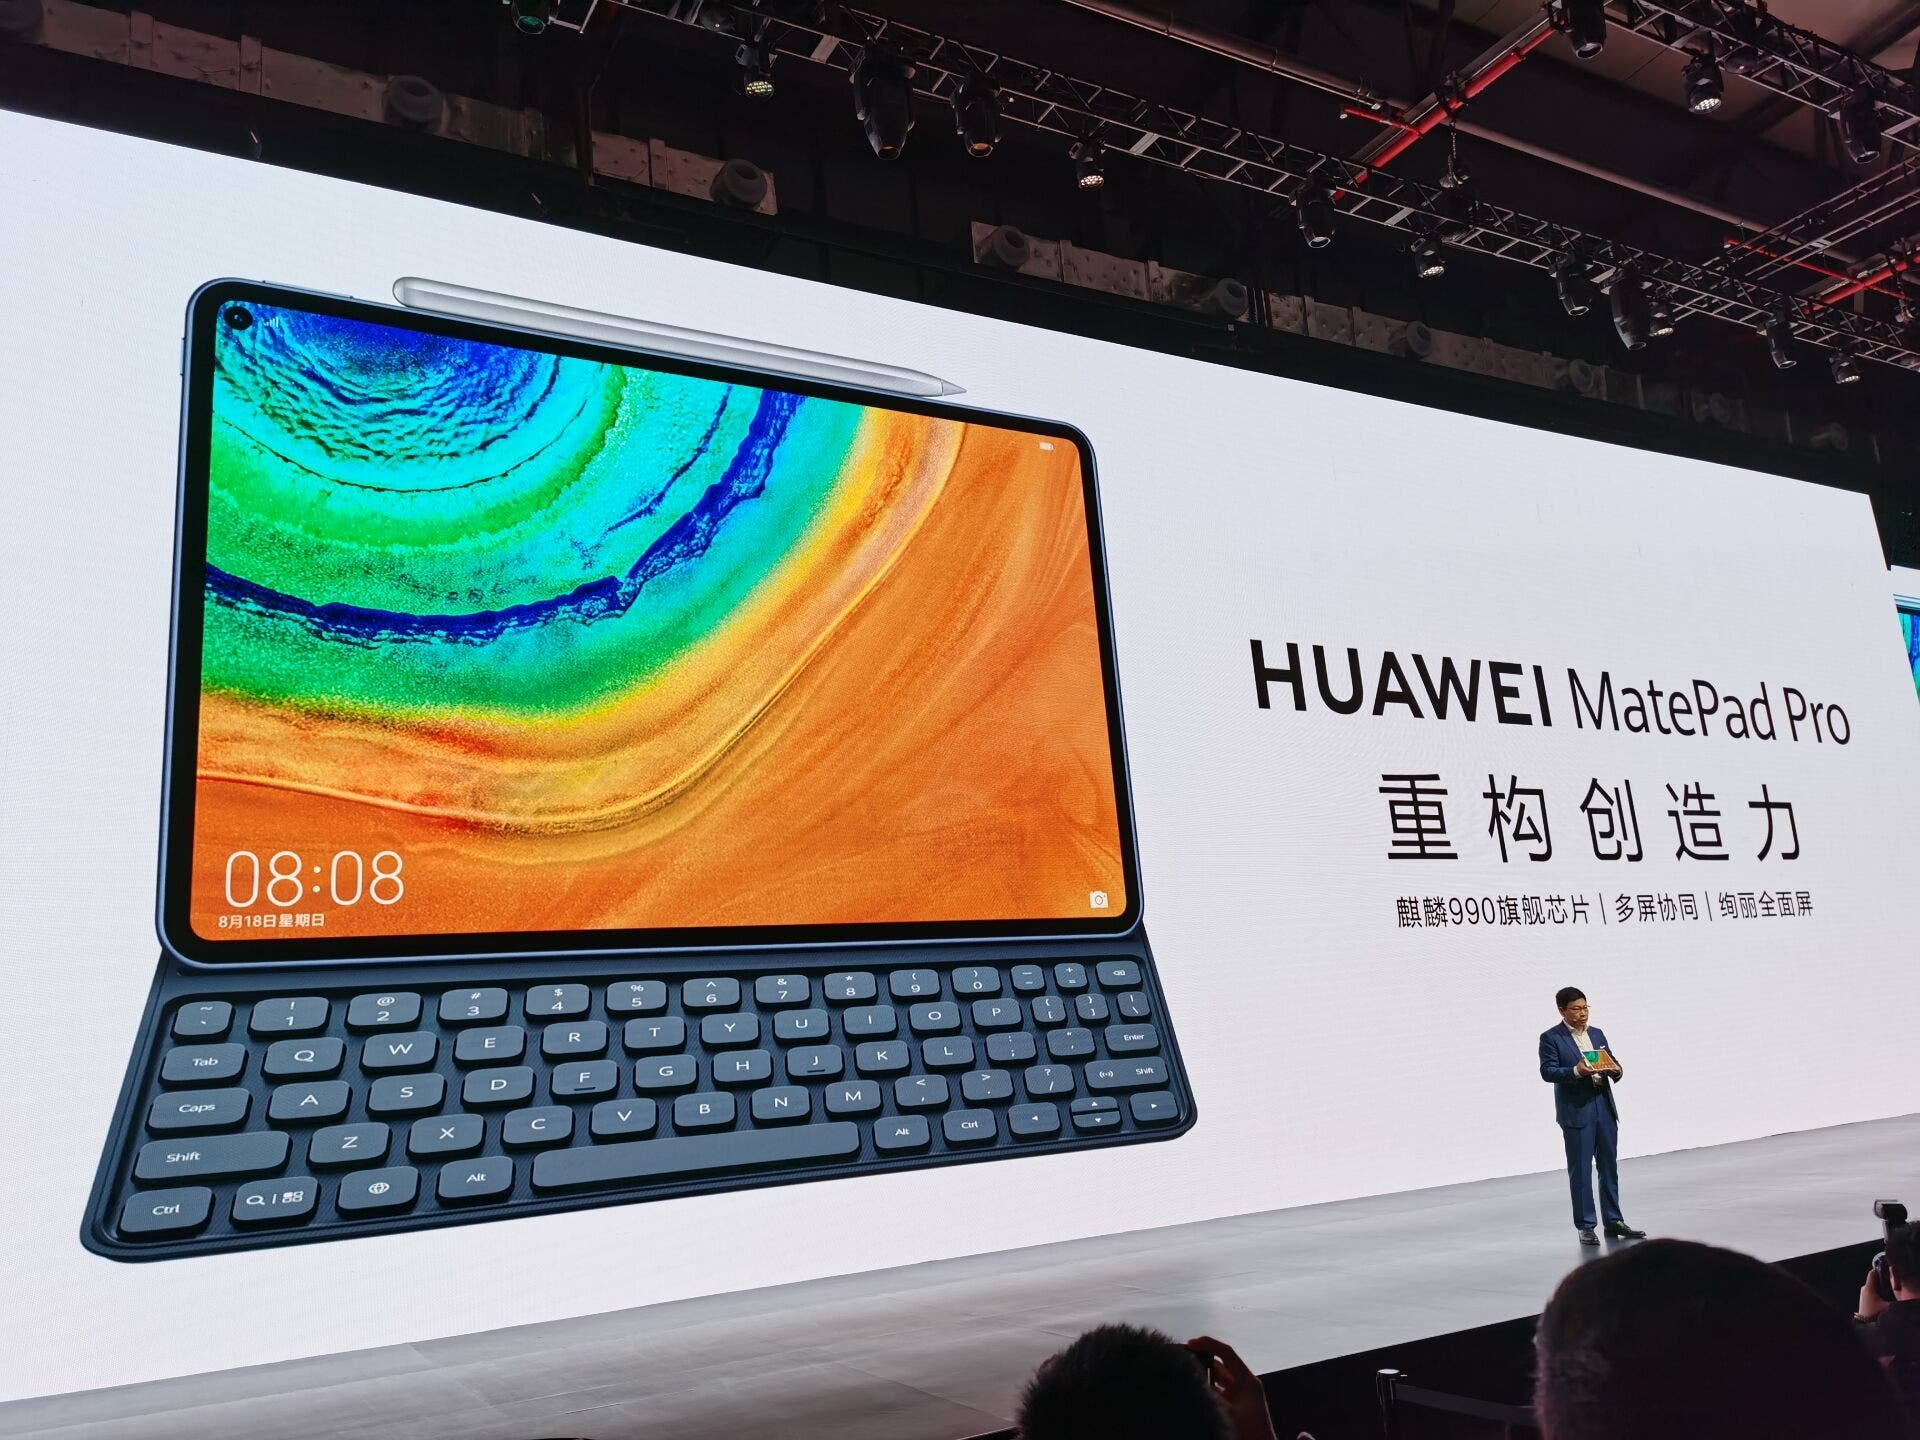 The Huawei MatePad Pro's specs have leaked ahead of its launch